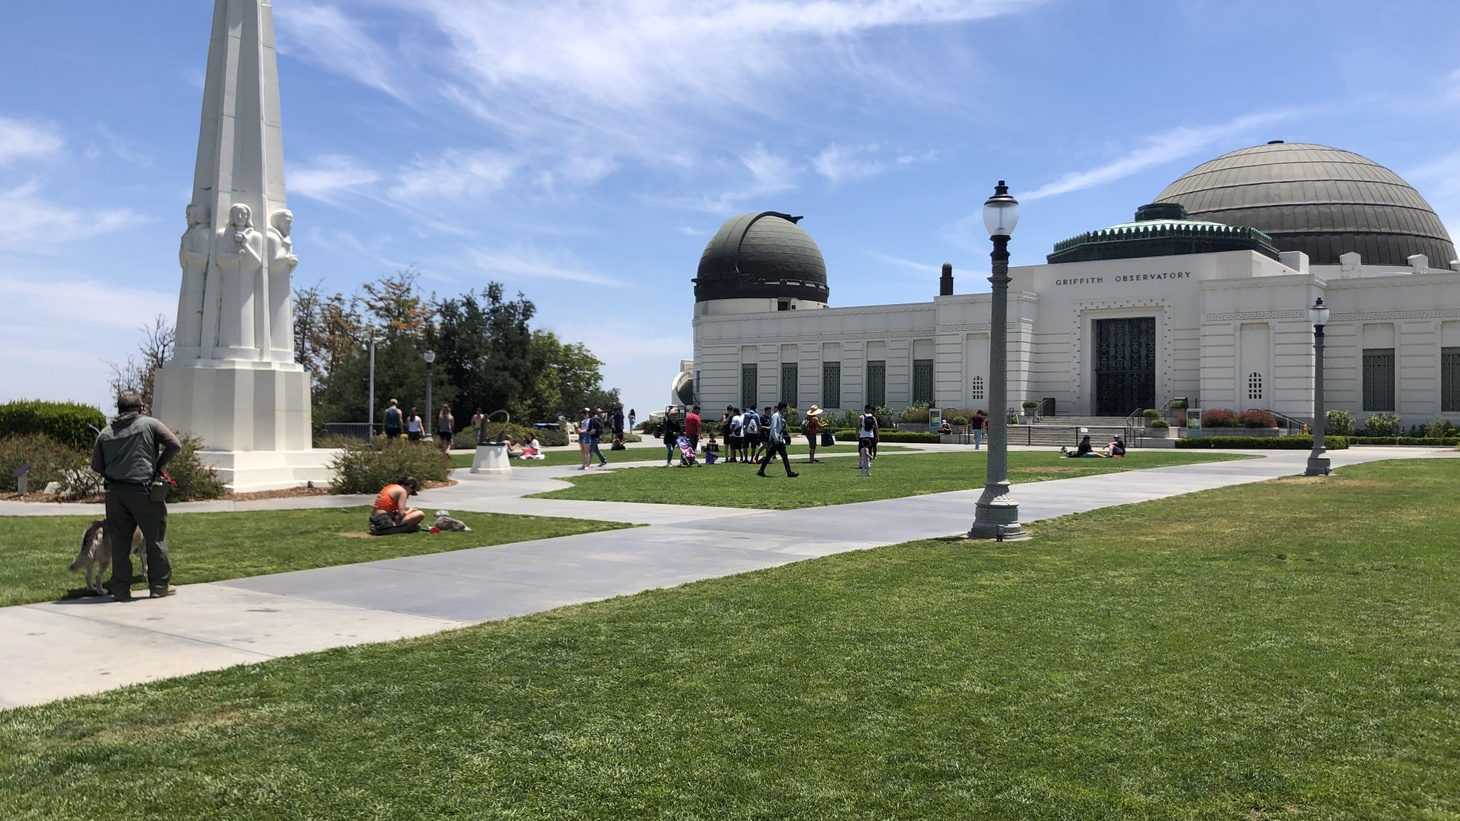 LA residents relax on the lawn outside the Griffith Observatory, which has been closed for more than a year because of the pandemic. June 5, 2021.